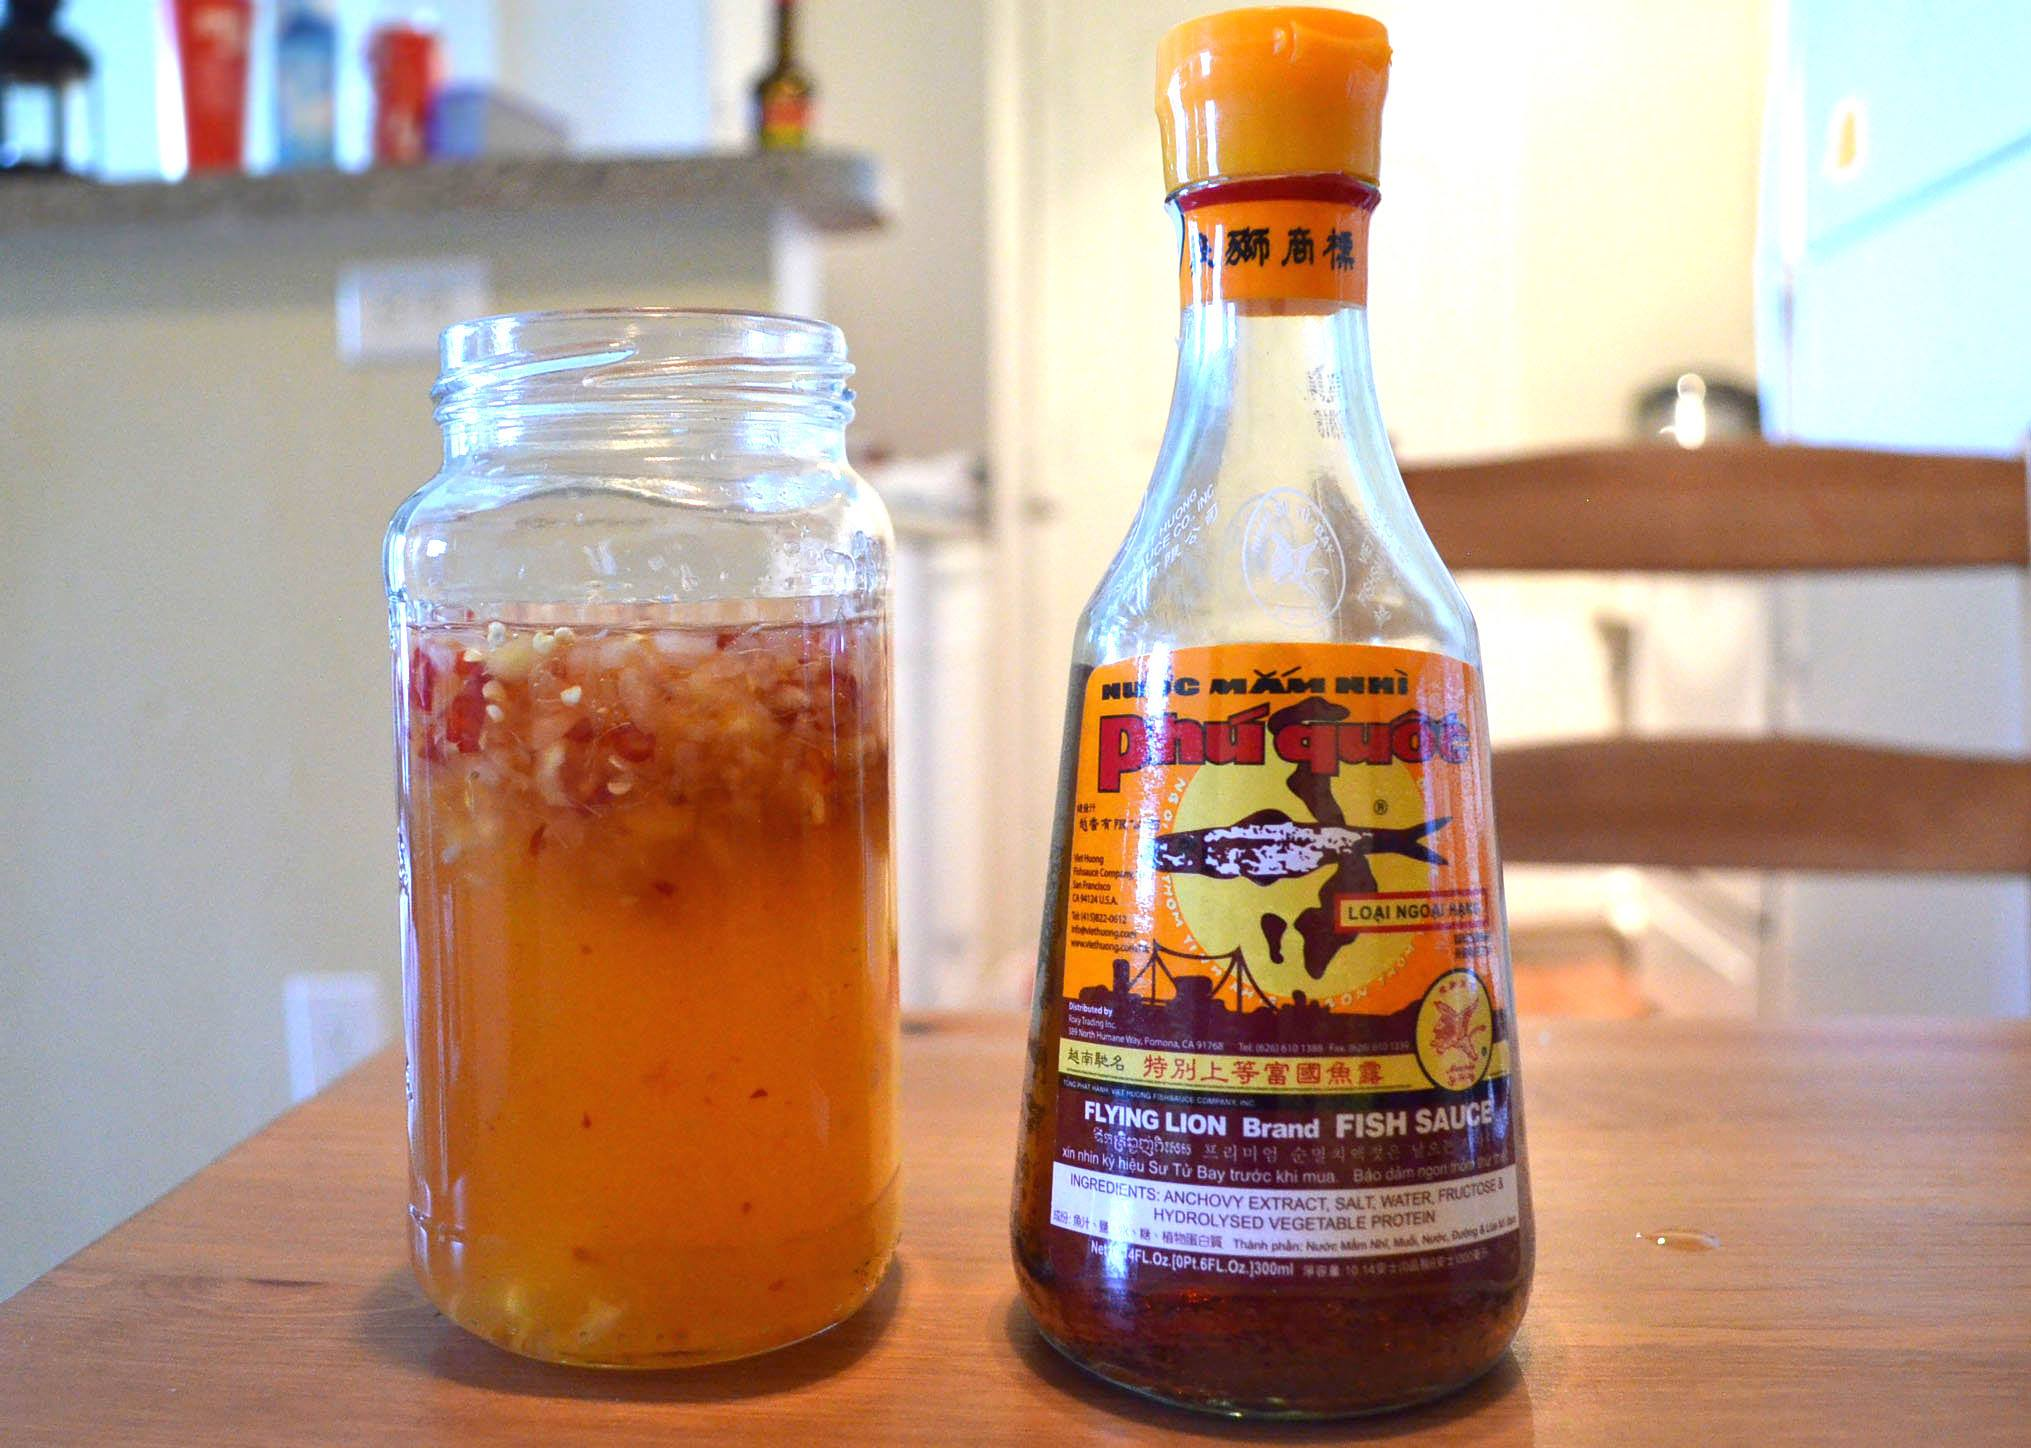 A jar of dipping fish sauce, or nước mắm chấm, next to a bottle of nước mắm from Phú Quốc. (Photo: Loa/Kathy Triệu)